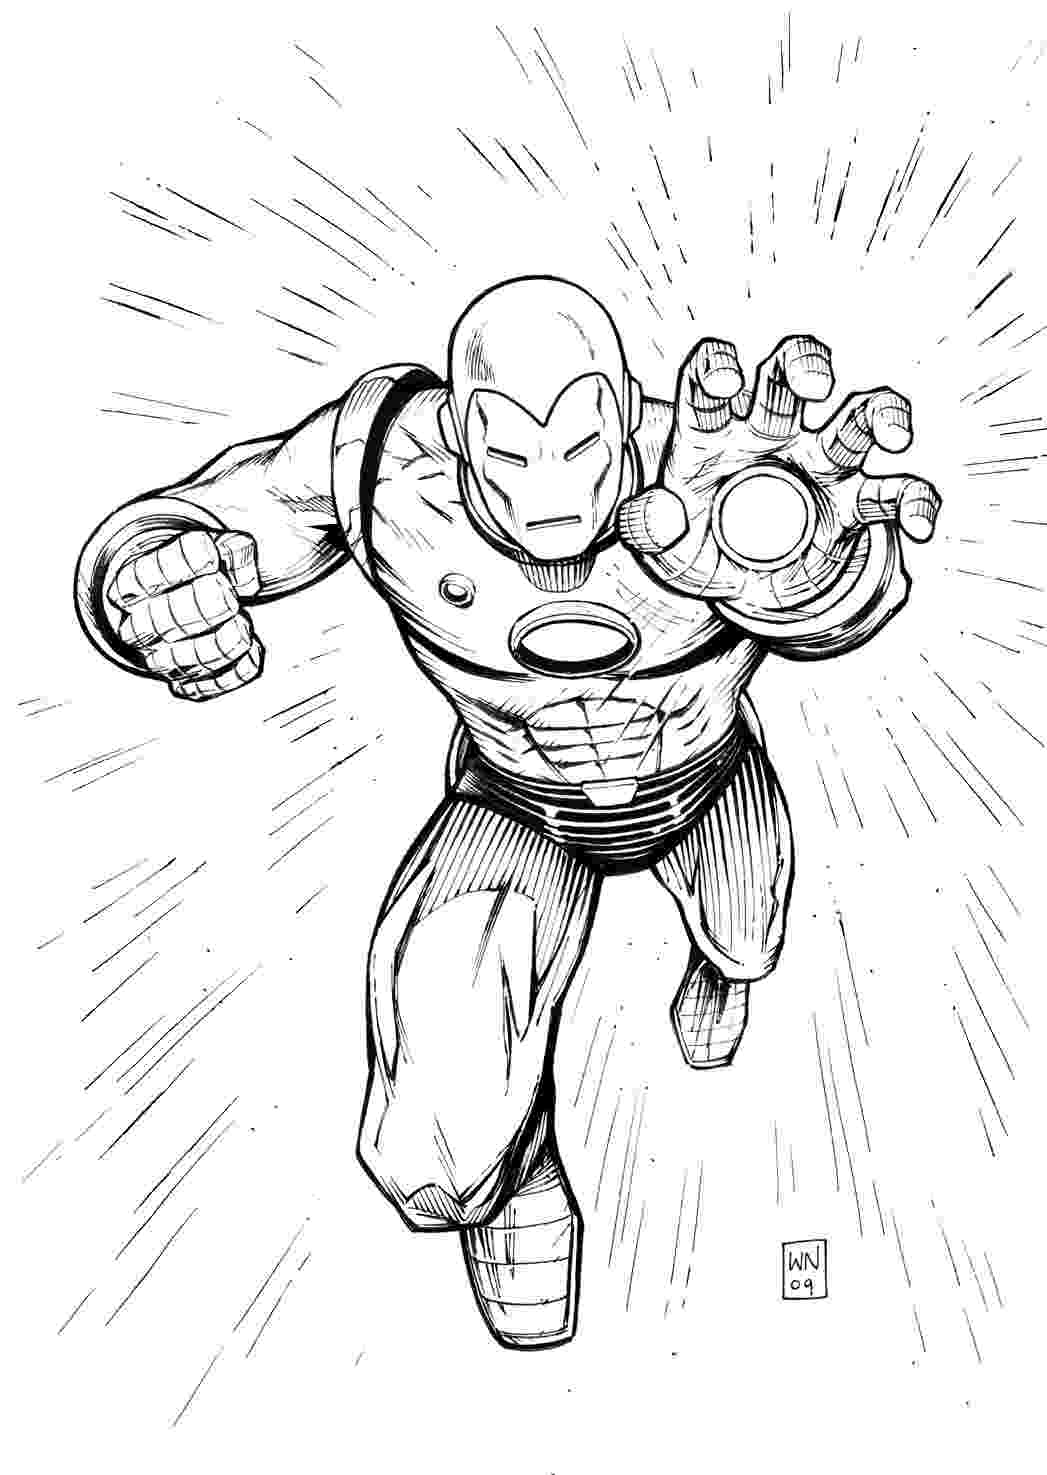 iron man printable pictures free printable iron man coloring pages for kids best man pictures iron printable